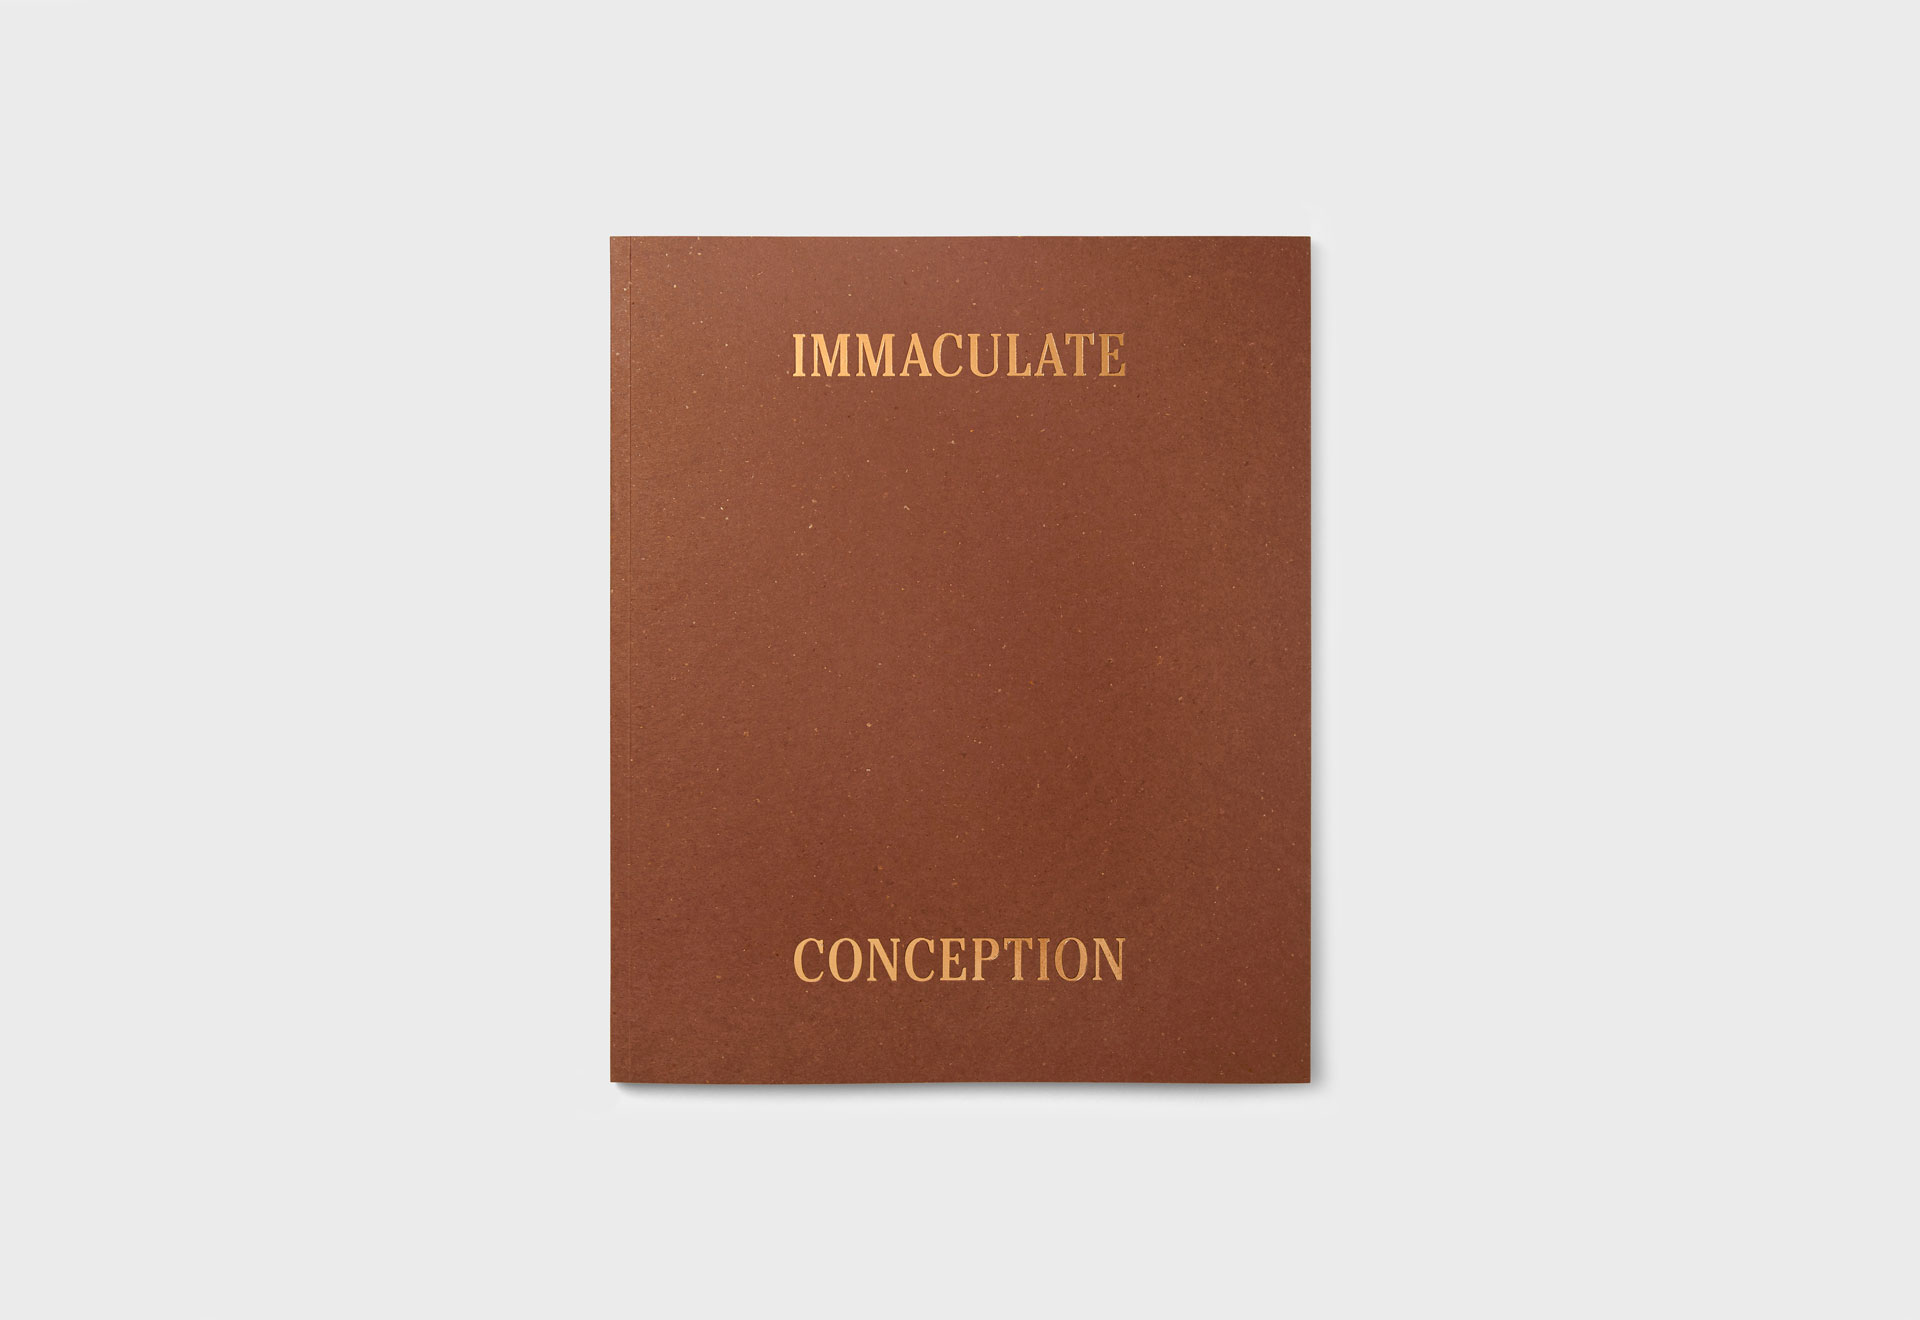 Immaculate Conception exhibition catalogue designed by She Was Only